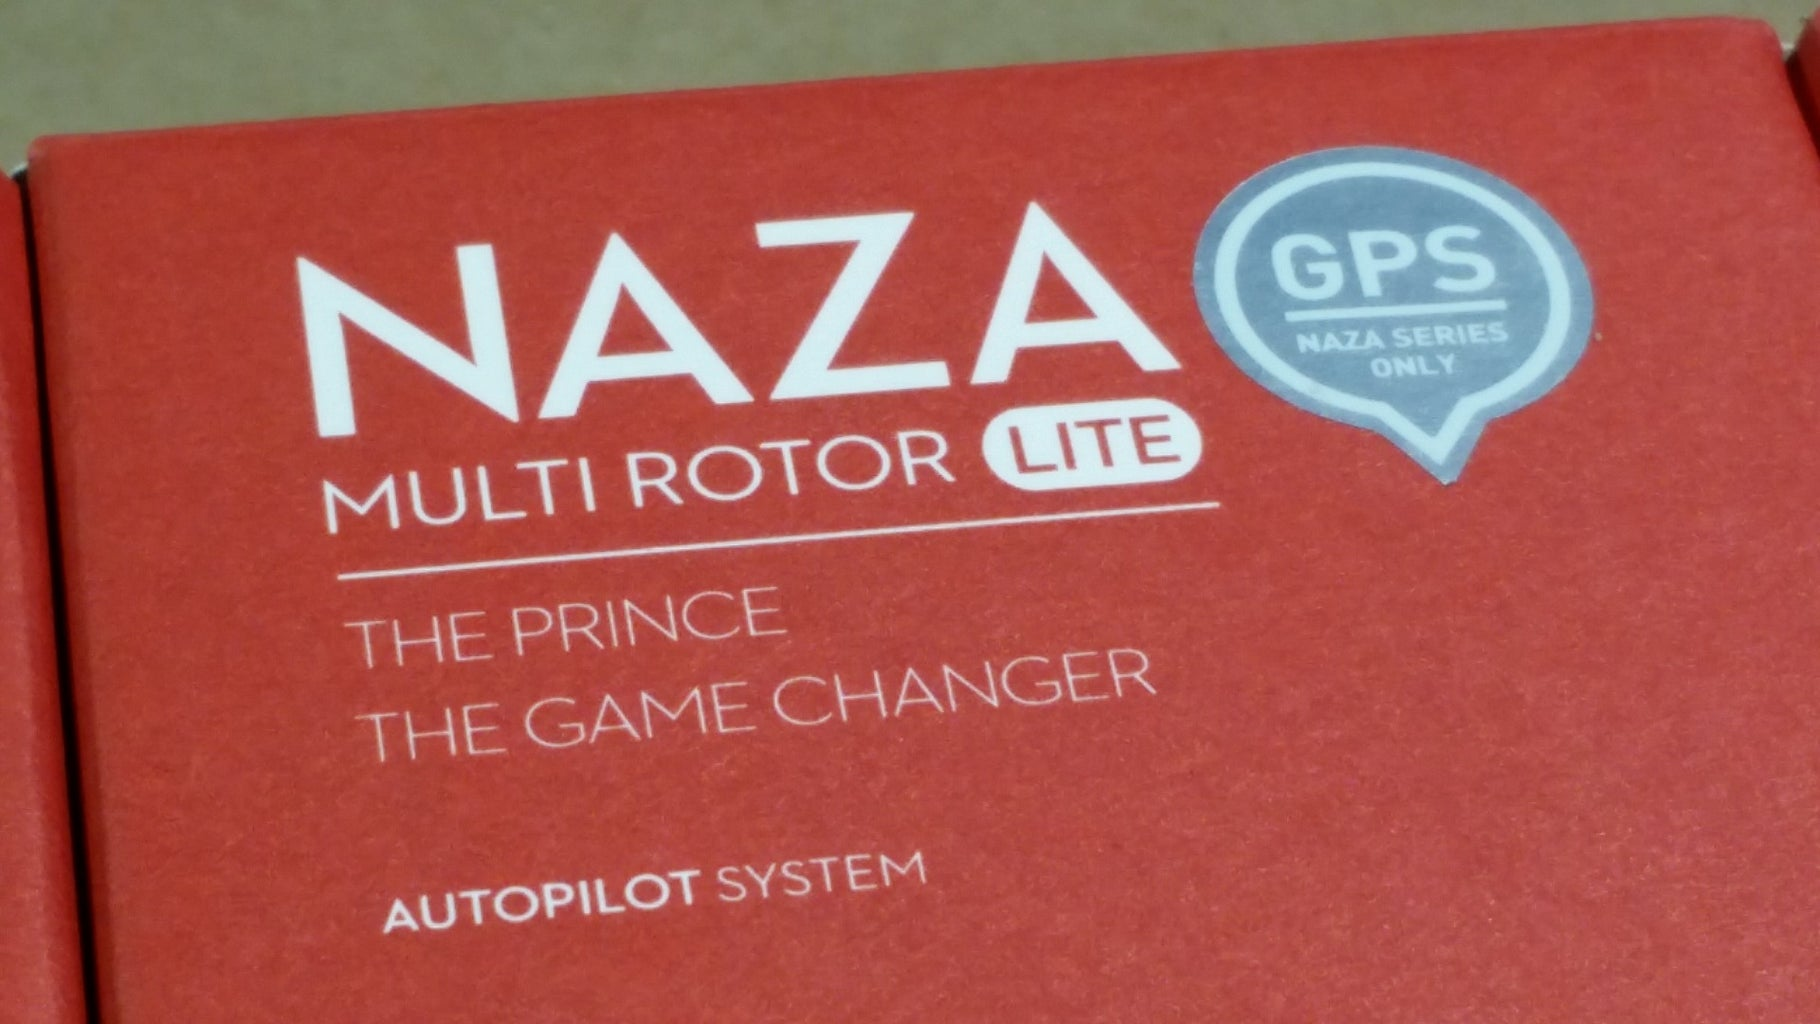 About the Naza M Lite